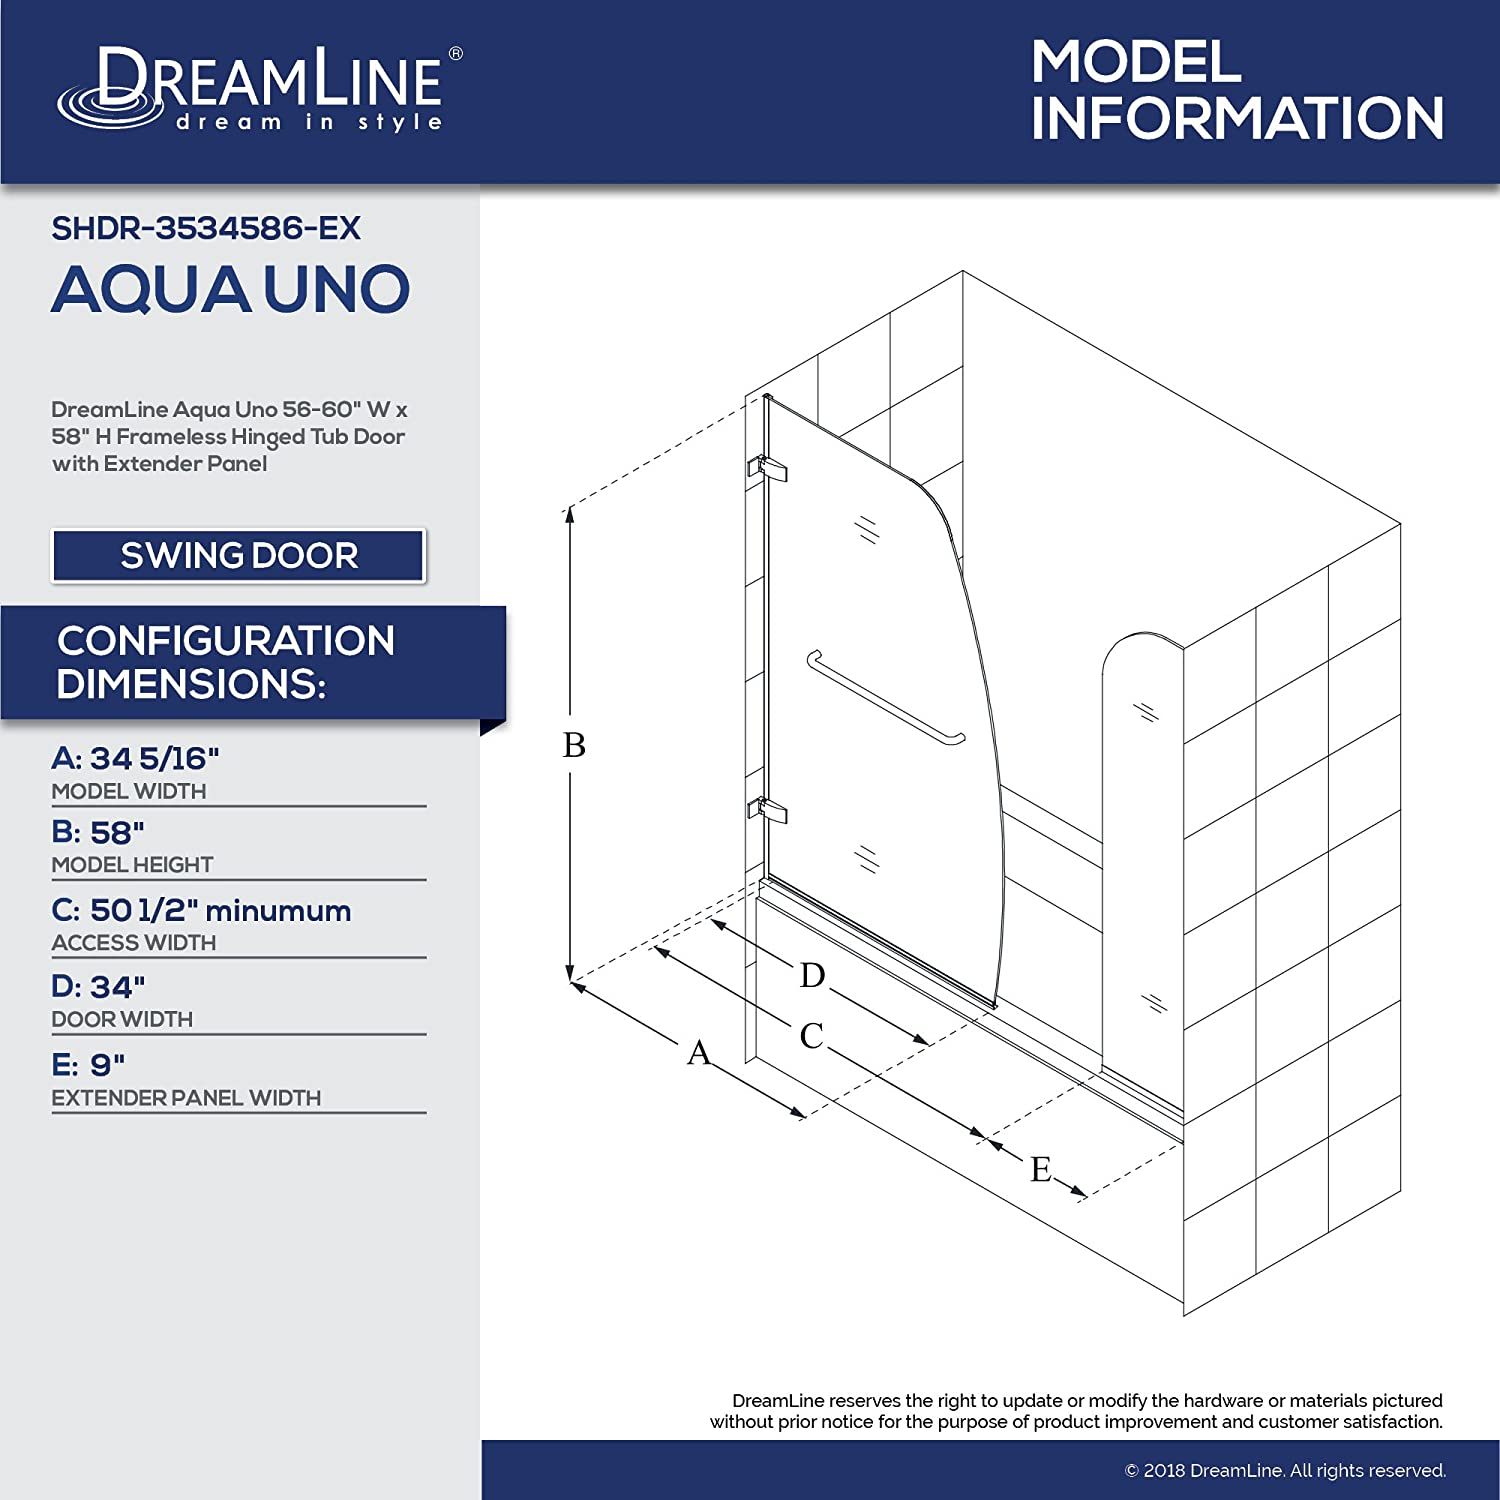 H Frameless Hinged Tub Door with Extender Panel in Chrome SHDR-3534586-EX-01 DreamLine Aqua Uno 56-60 in W x 58 in